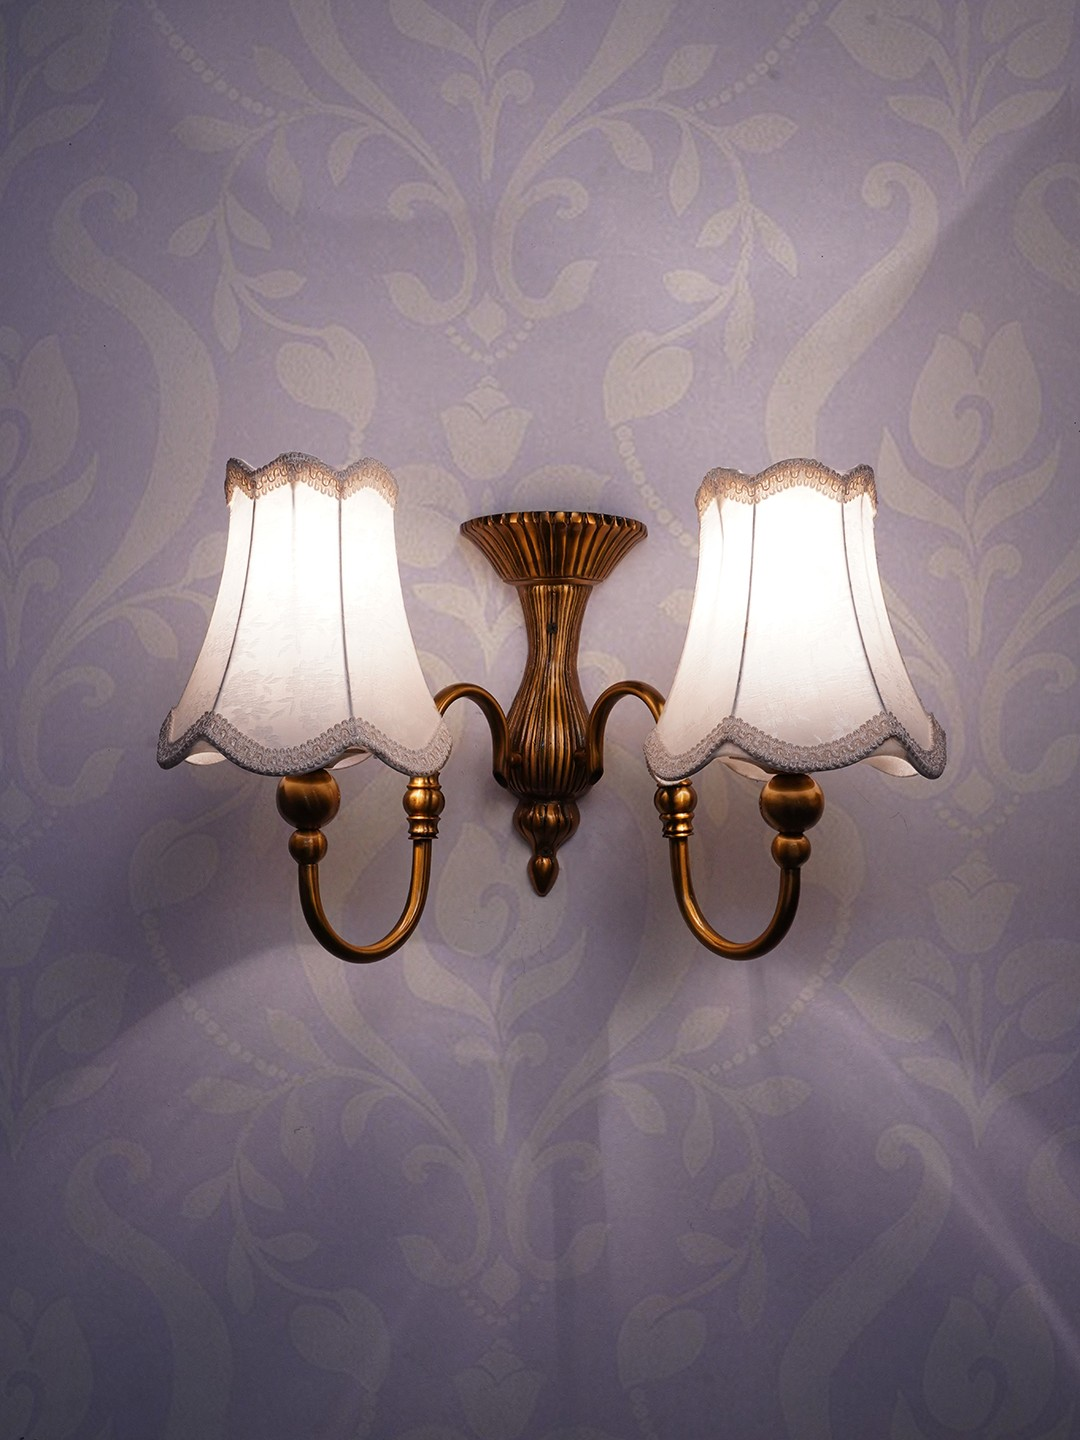 Victoria Dual Light or 2 Lamp Shade Brass Light with Classic Fabric Covering Antique Brass Finish Wall Light/Wall Hanging Lamp for Rooms Halls and Kitchen